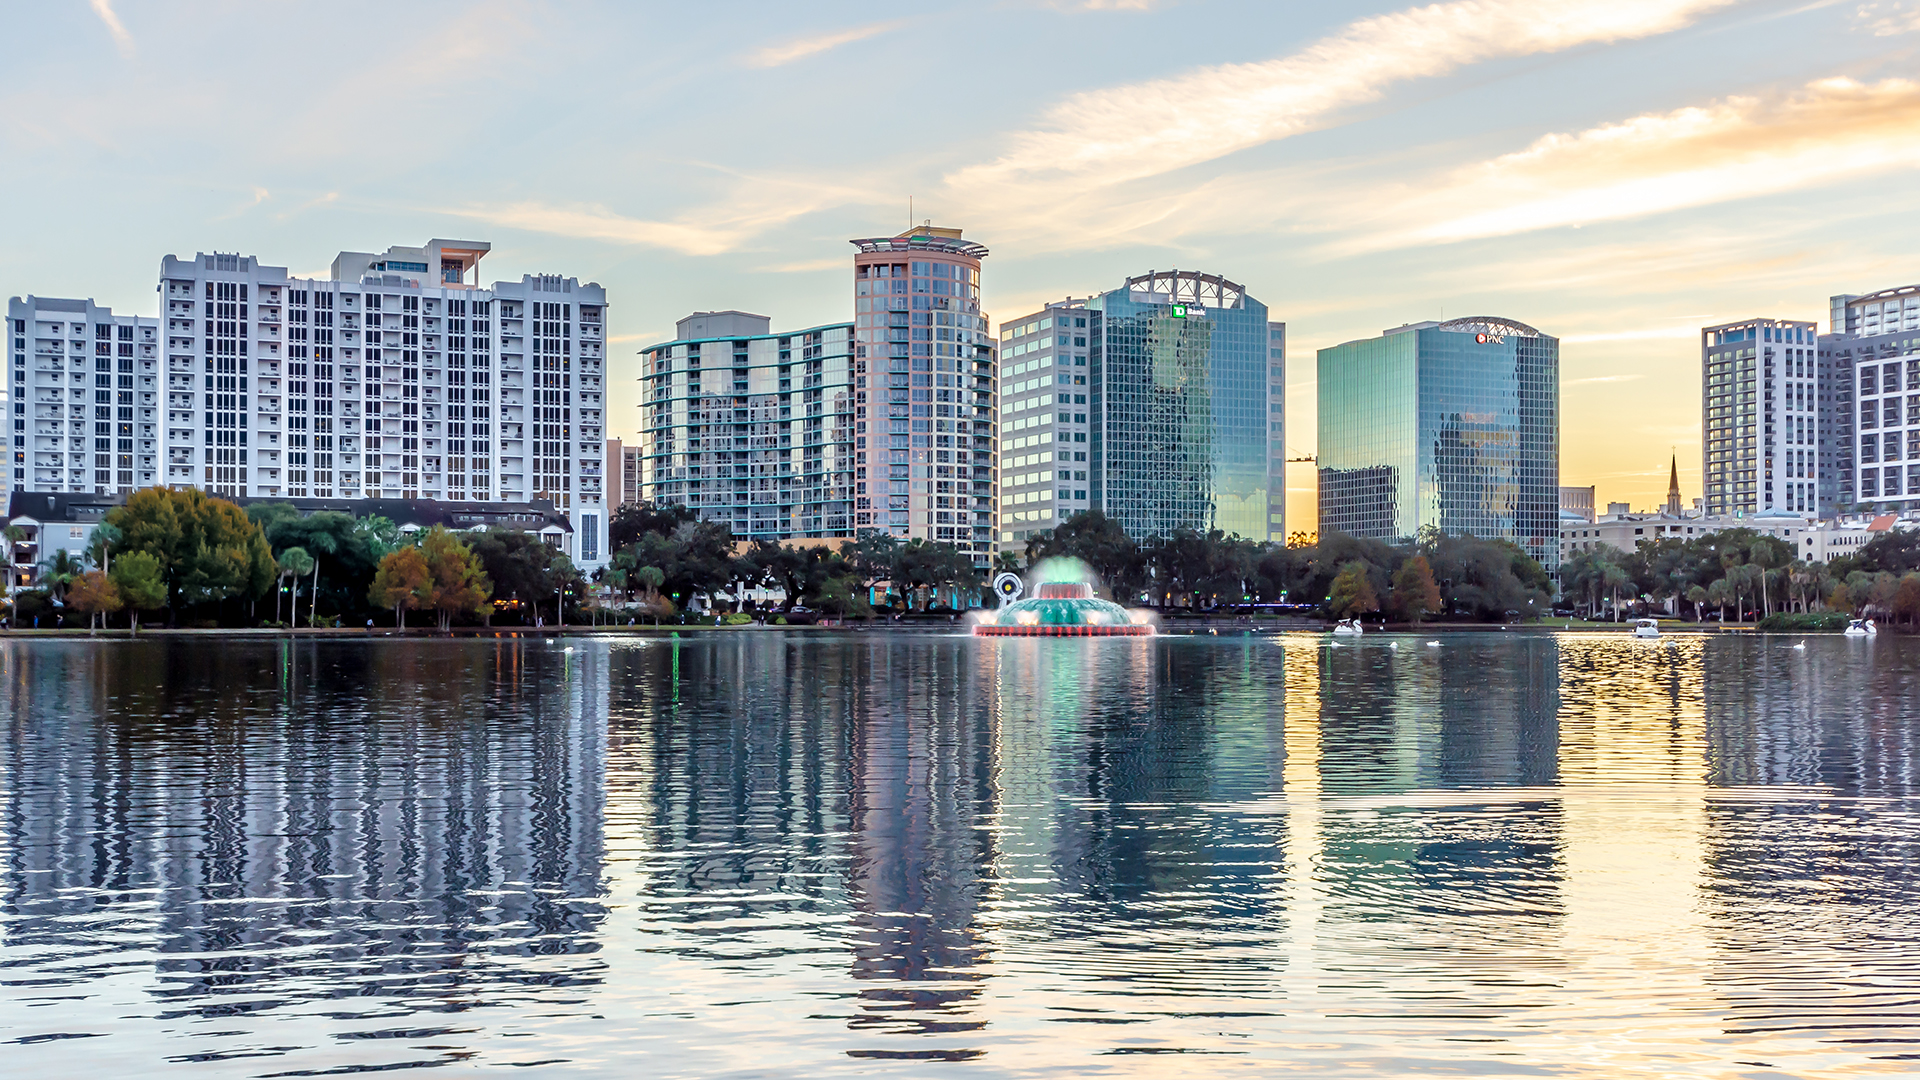 BBIF FLORIDA RECEIVES MORE THAN $1.5M IN GRANTS AND LOANS FROM WELLS FARGO, SUNTRUST FOR SMALL BUSINESS GROWTH